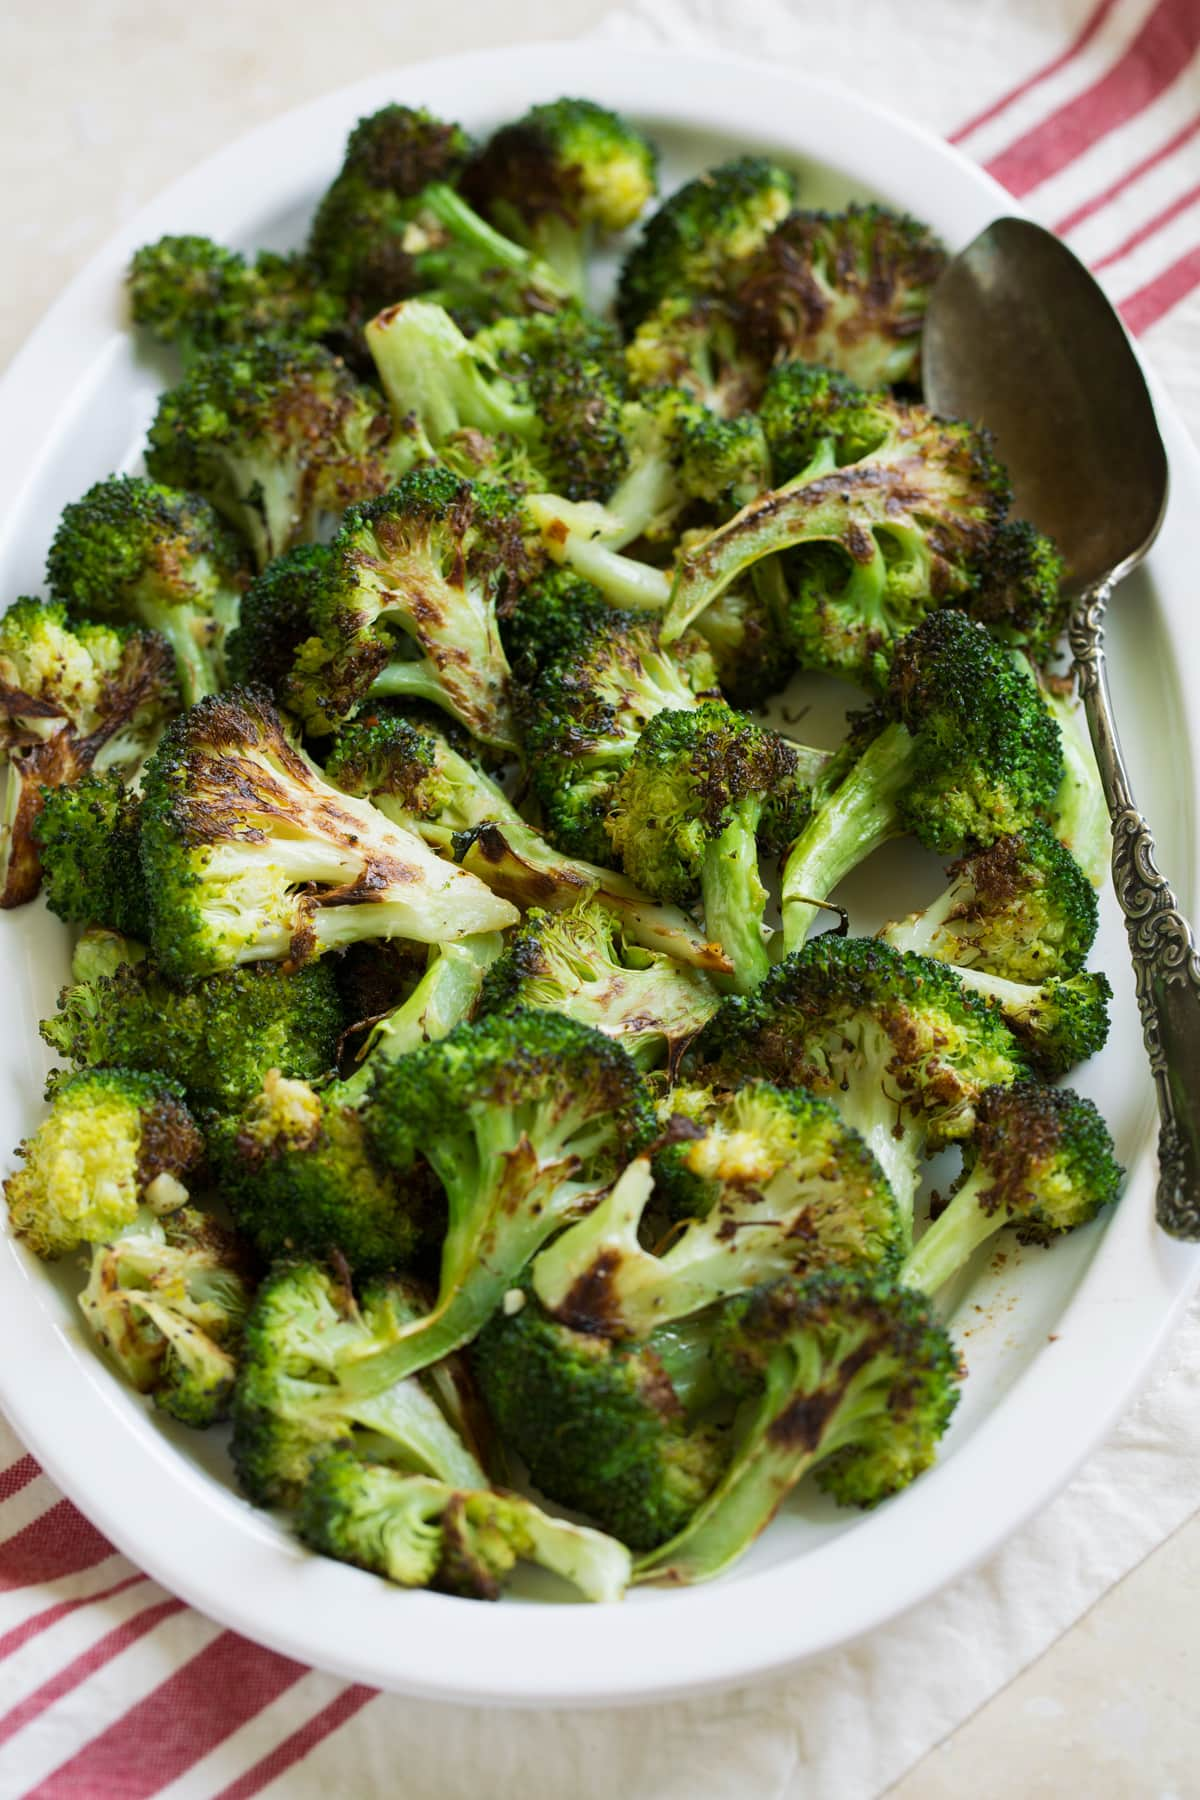 Broccoli on a serving plater over a striped napkin and beige table surface.